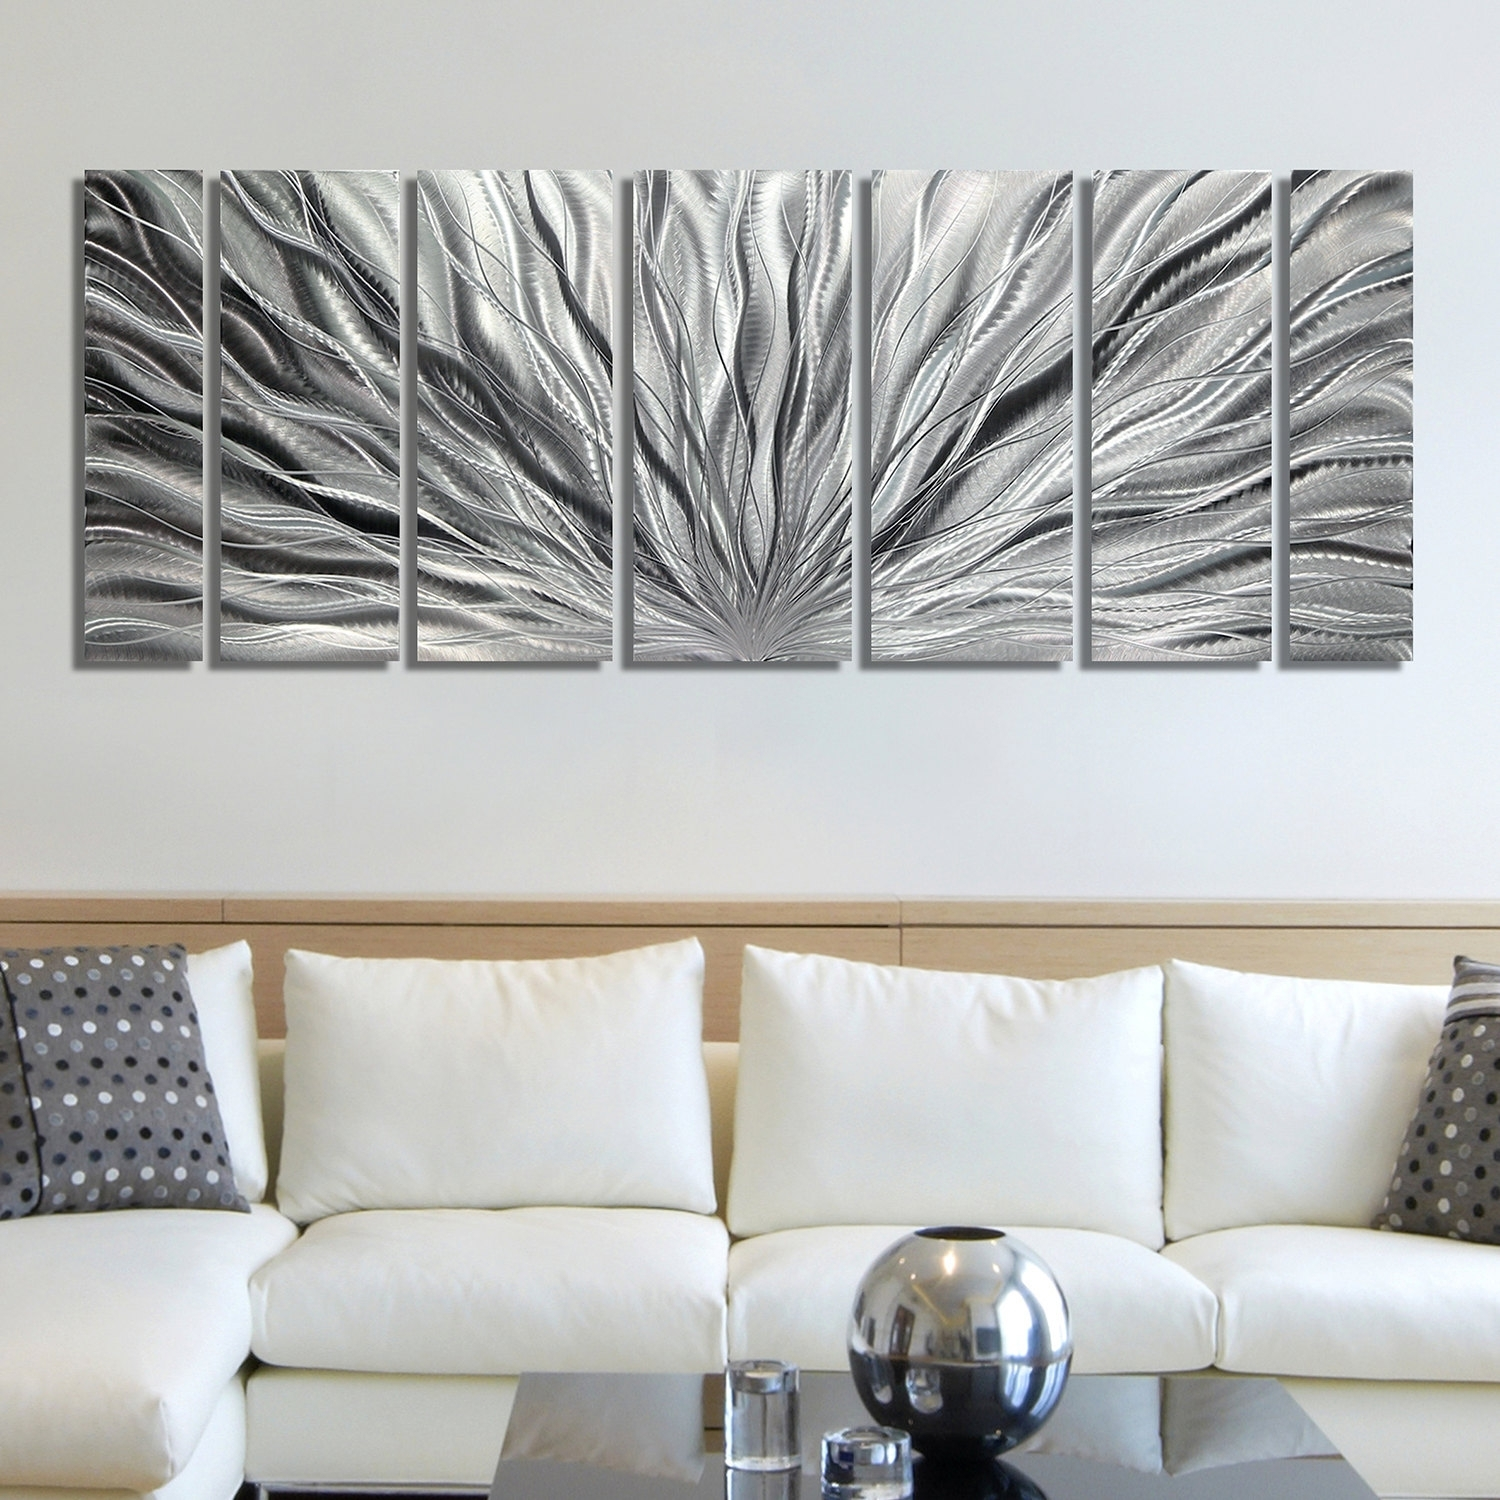 Silver Wall Art Cool Wall Decor On Sale – Wall Decoration And Wall In Most Current Silver Wall Art (Gallery 17 of 20)